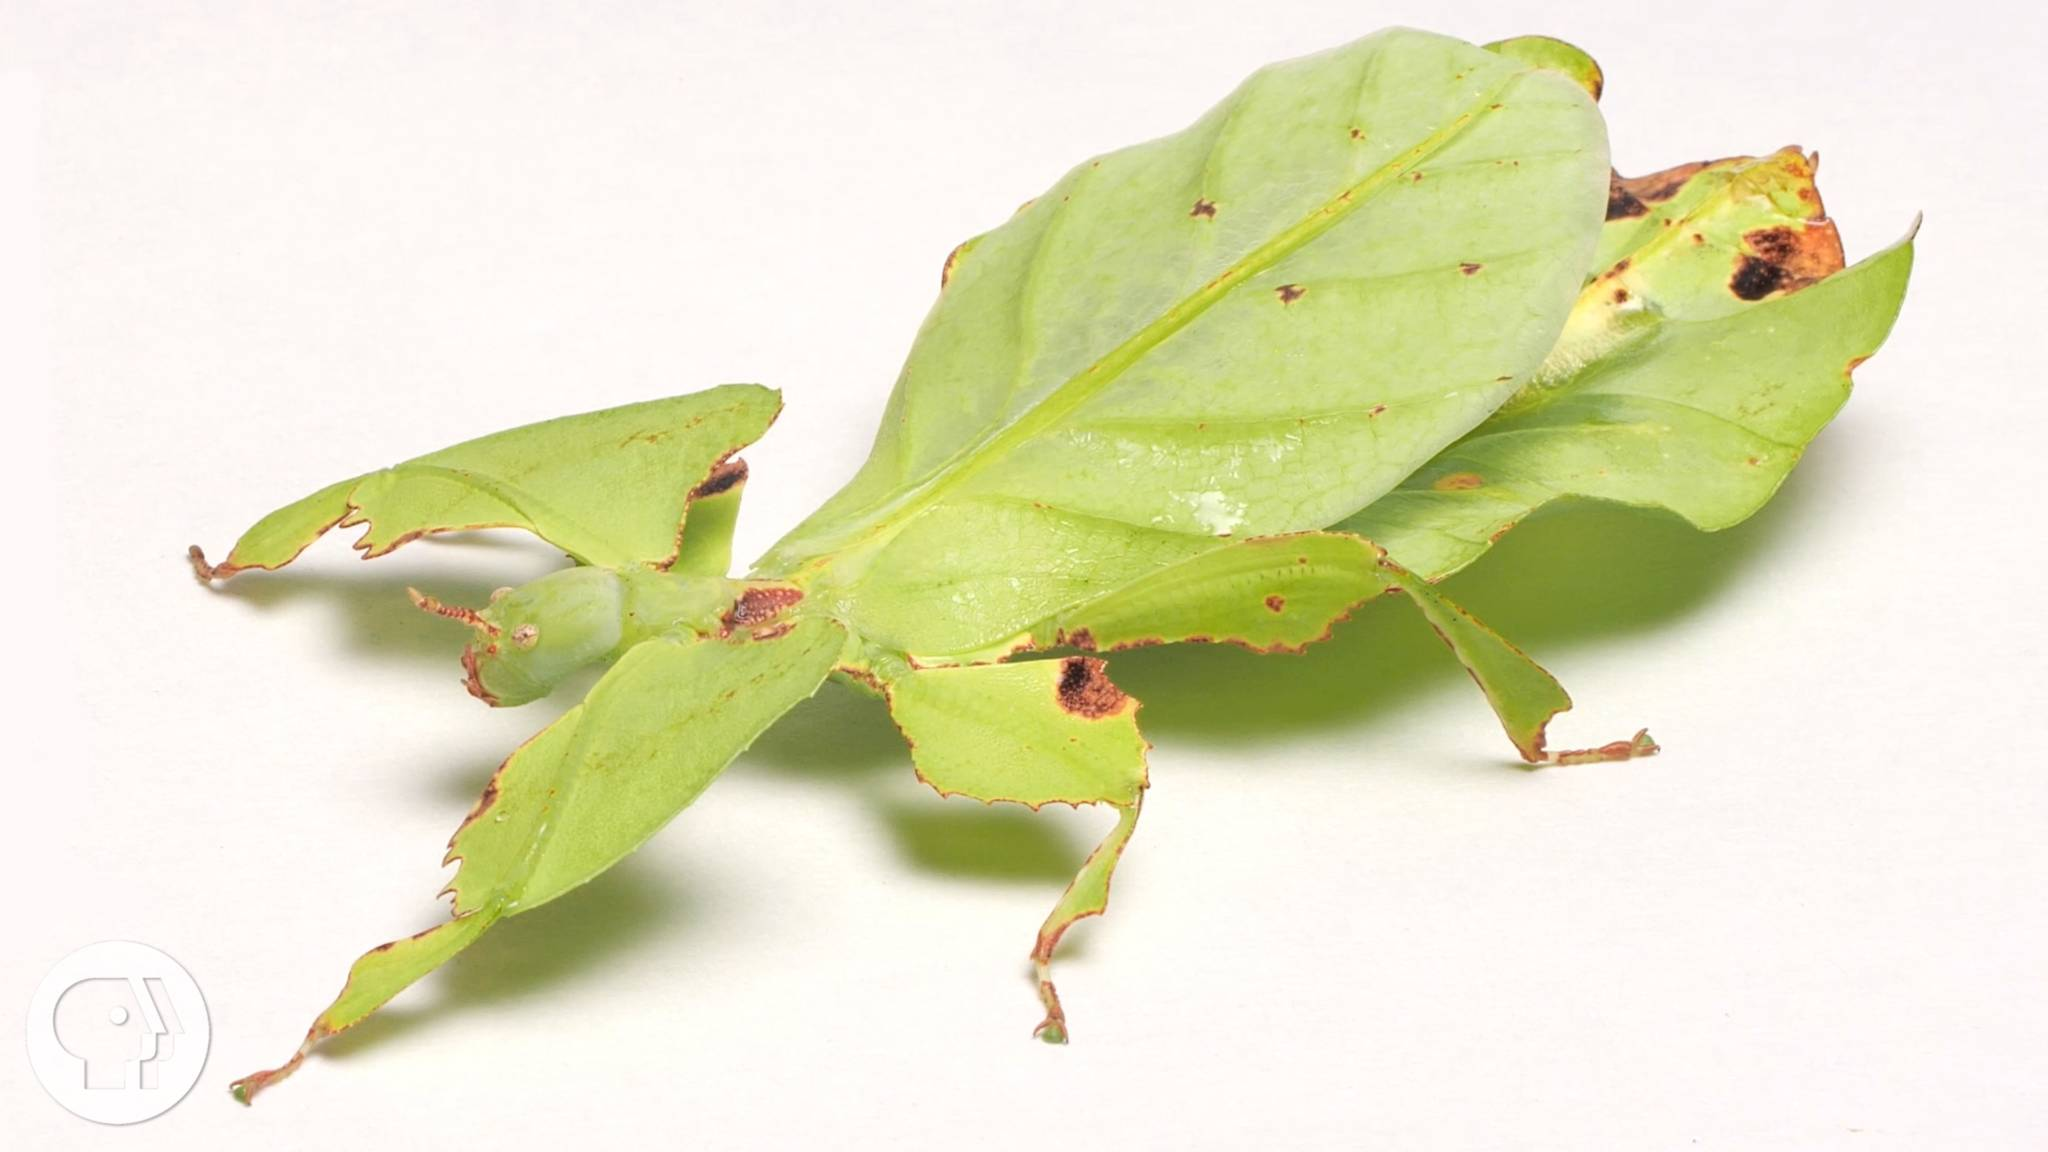 These Giant Leaf Insects Will Sway Your Heart